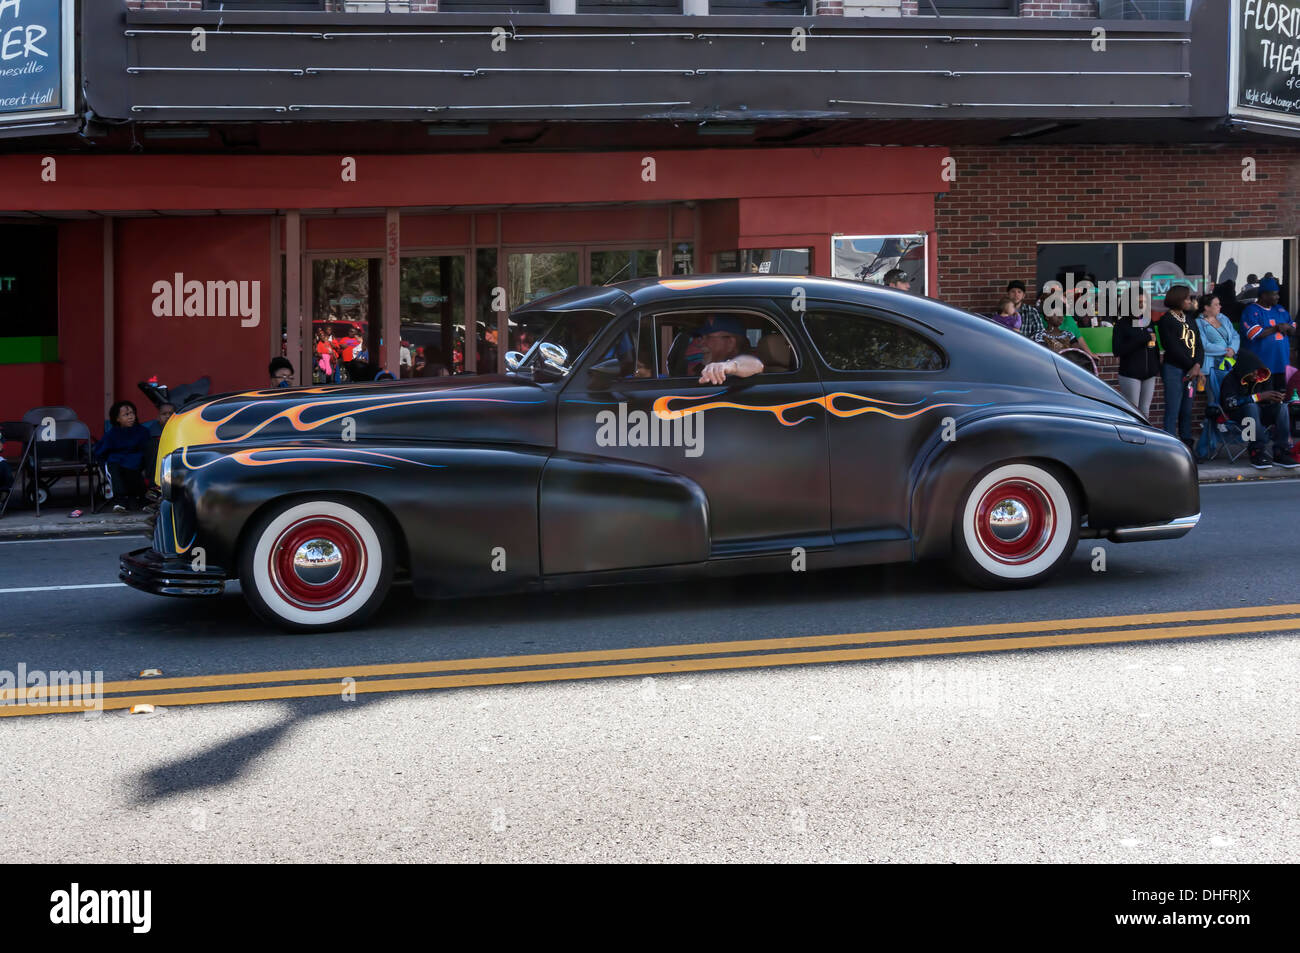 Matte black 1948 Oldsmobile two door fastback with hand painted flames in the University of Florida 2013 Homecoming Parade. - Stock Image